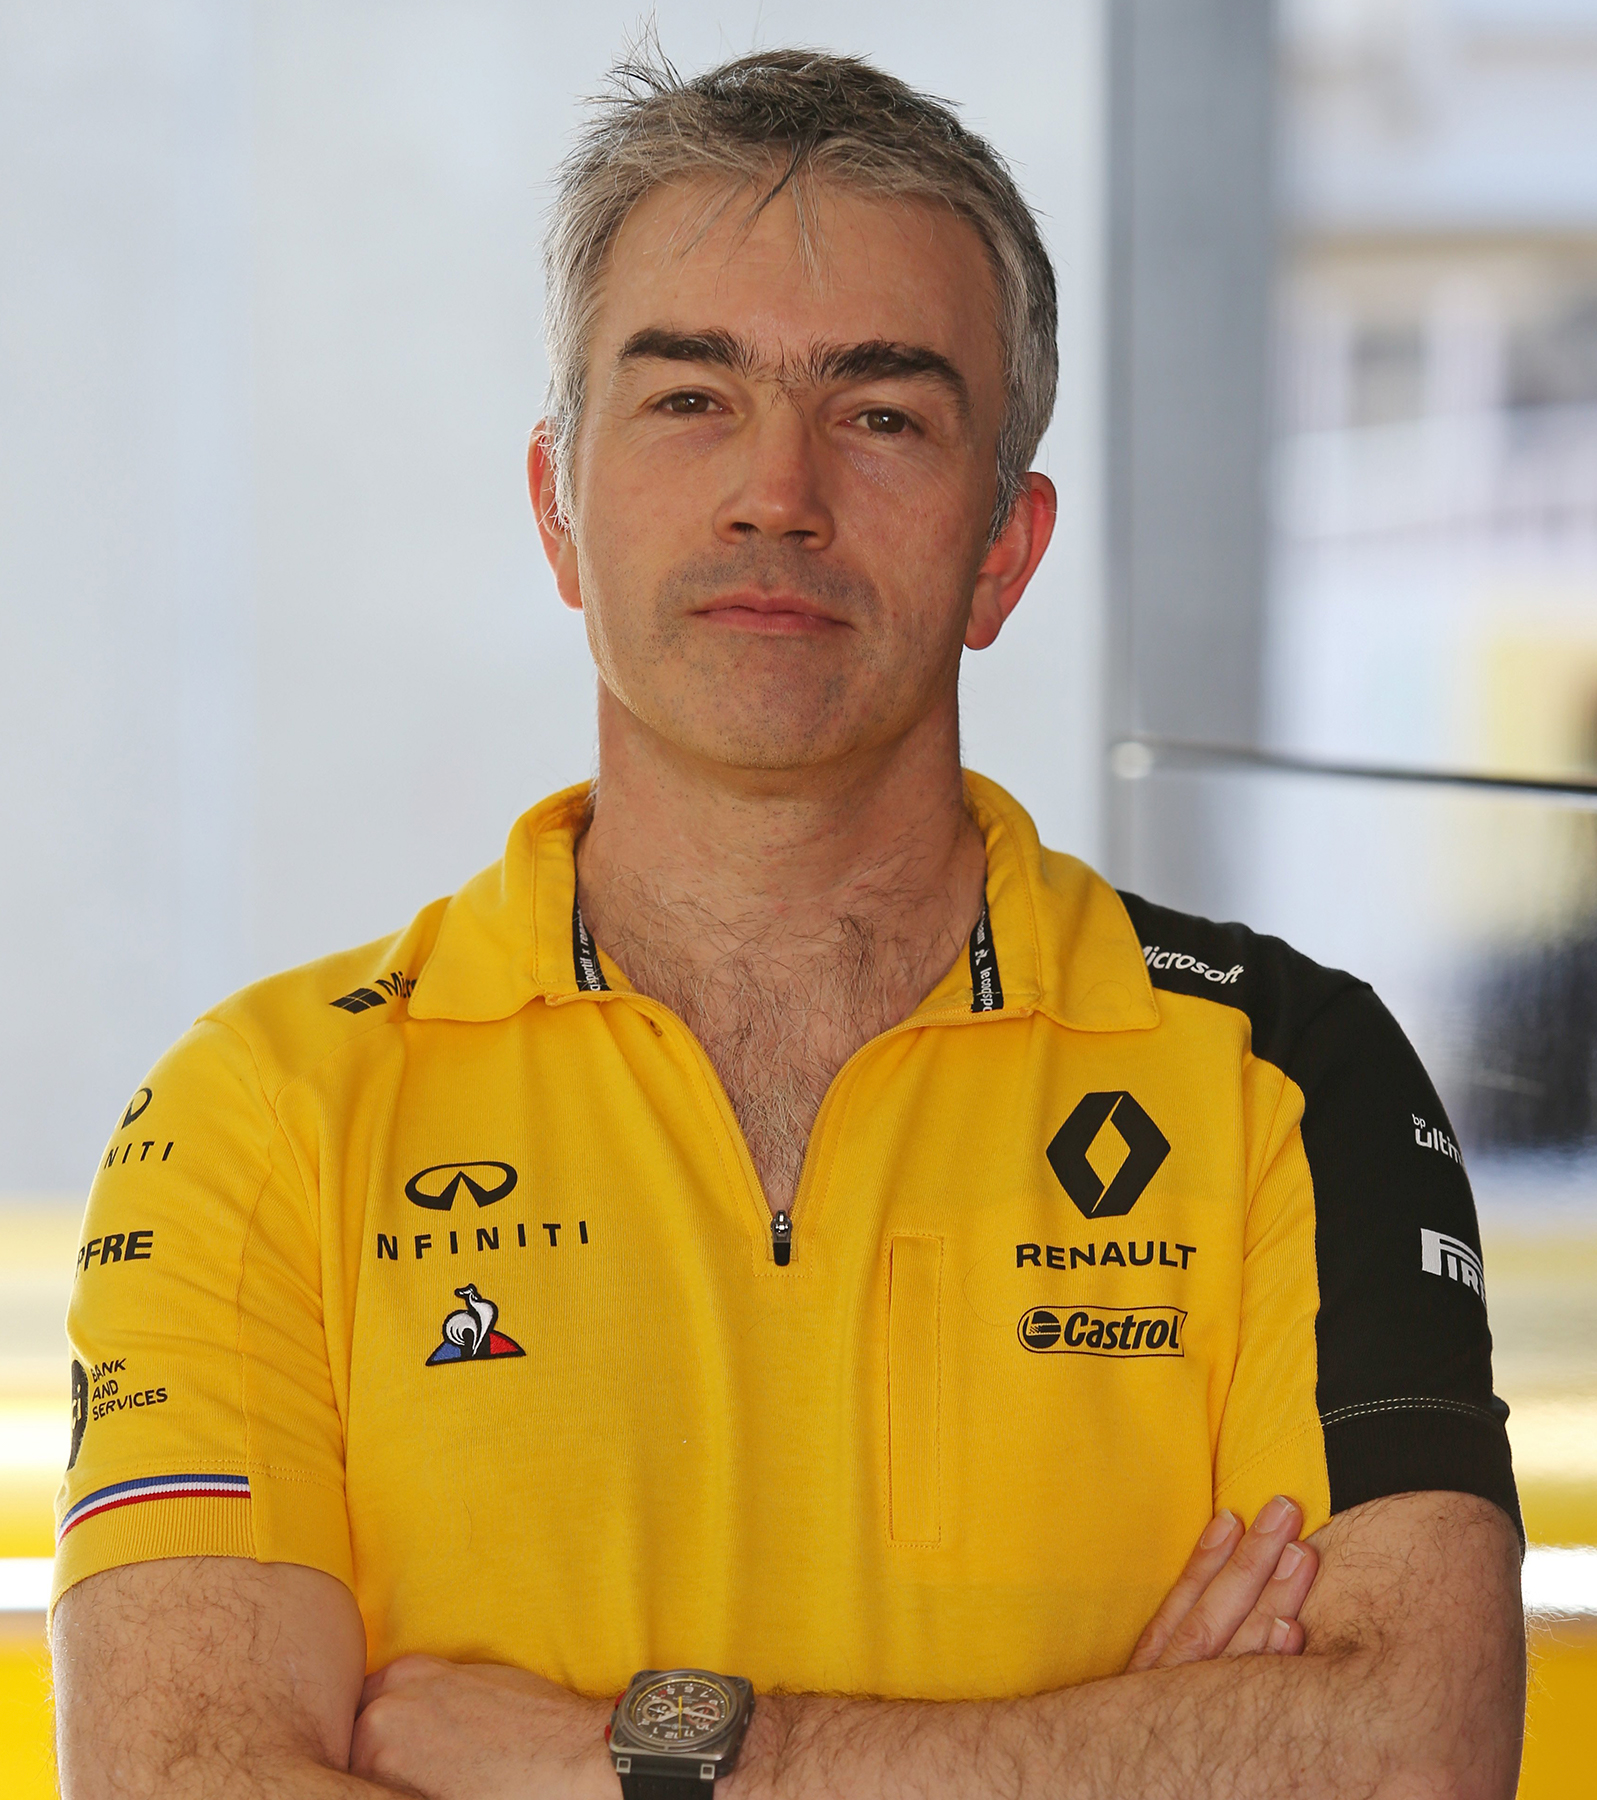 INFINITI and Renault F1? Team Technical Director Nick Chester